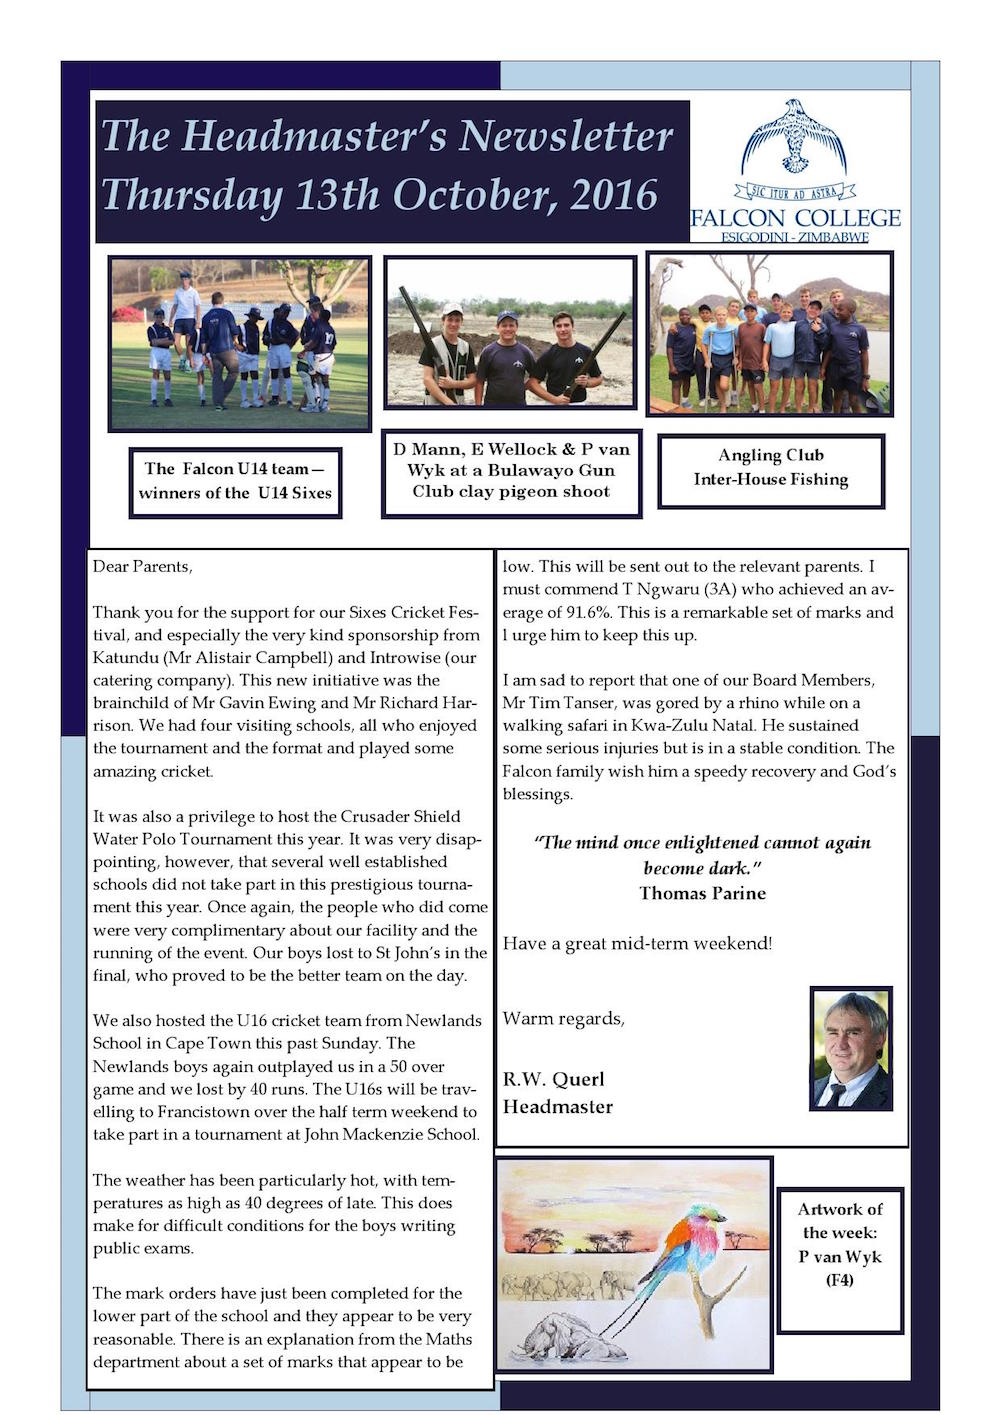 headmasters-newsletter-thursday-13th-october-2016-edited_000001